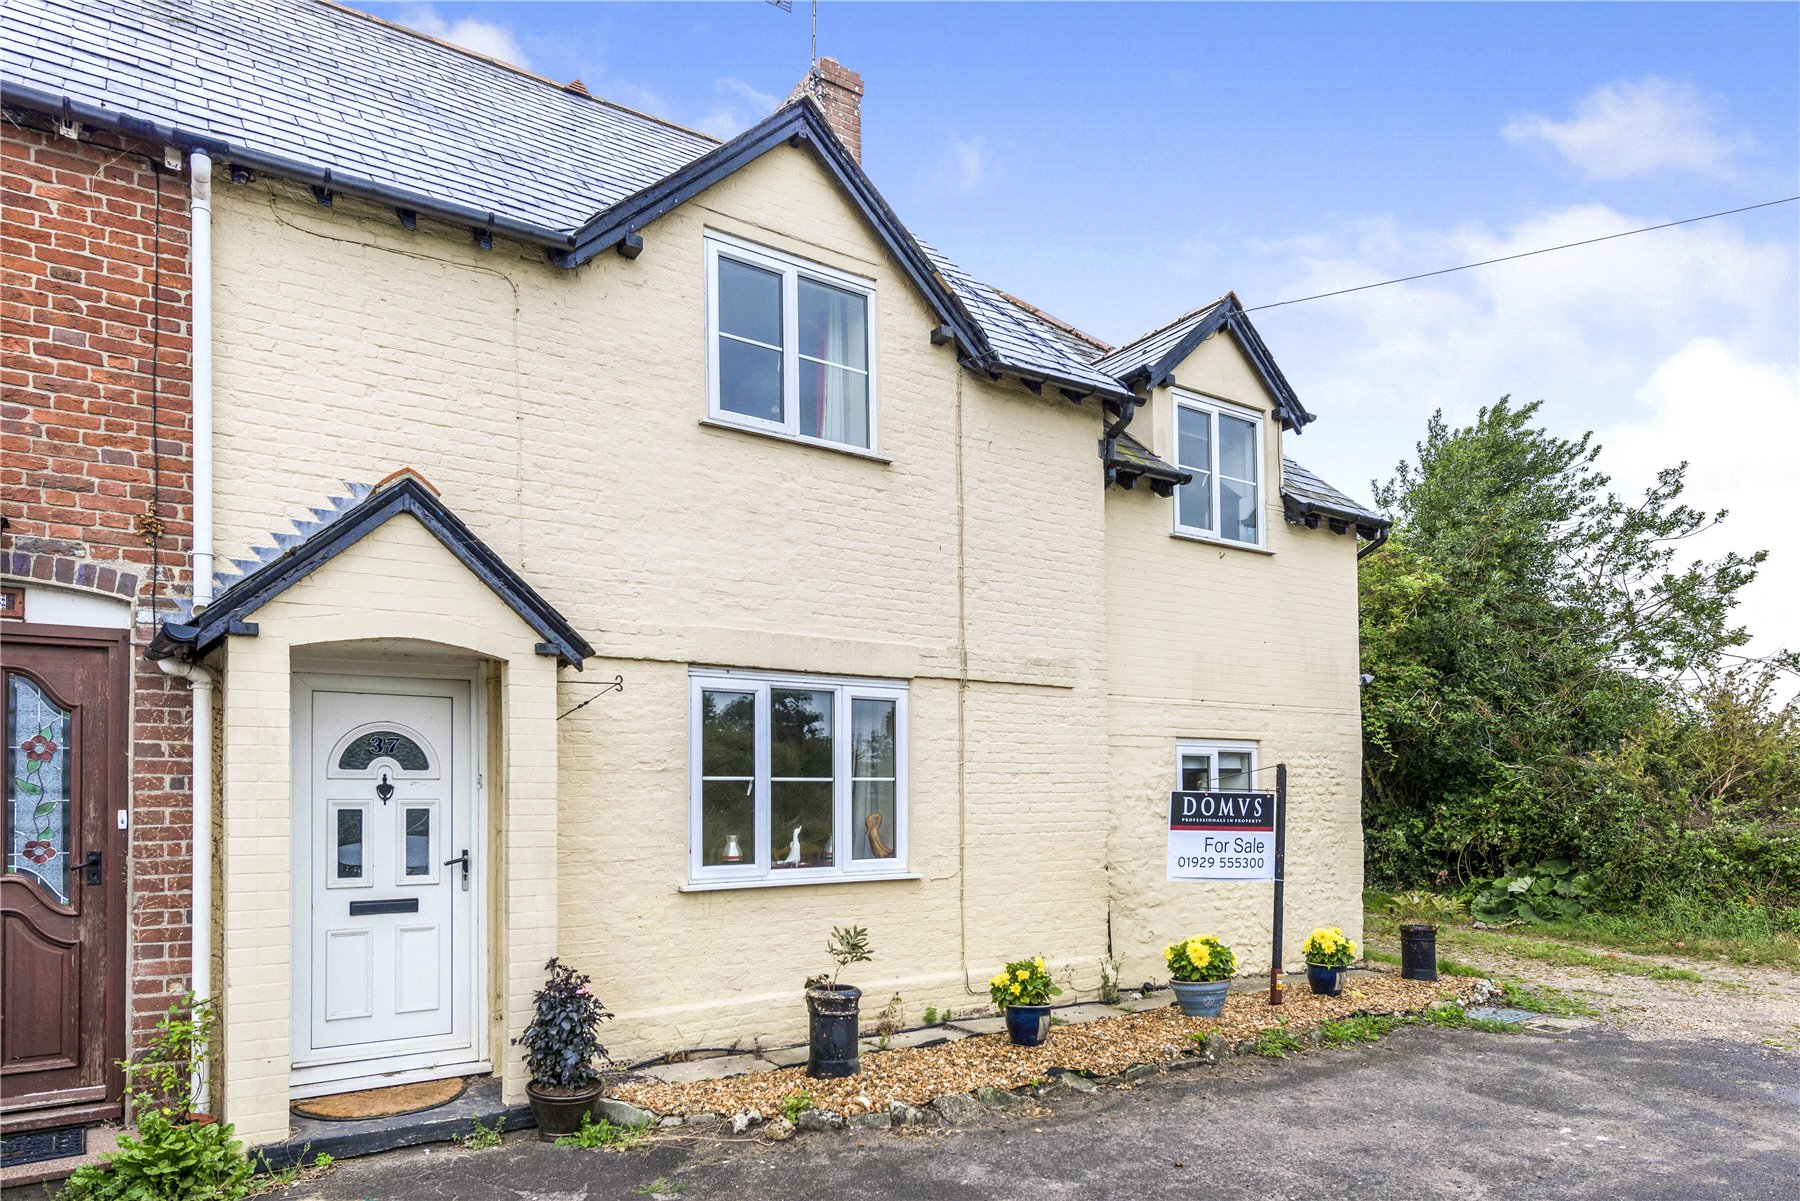 holiday cottage for sale by the coast